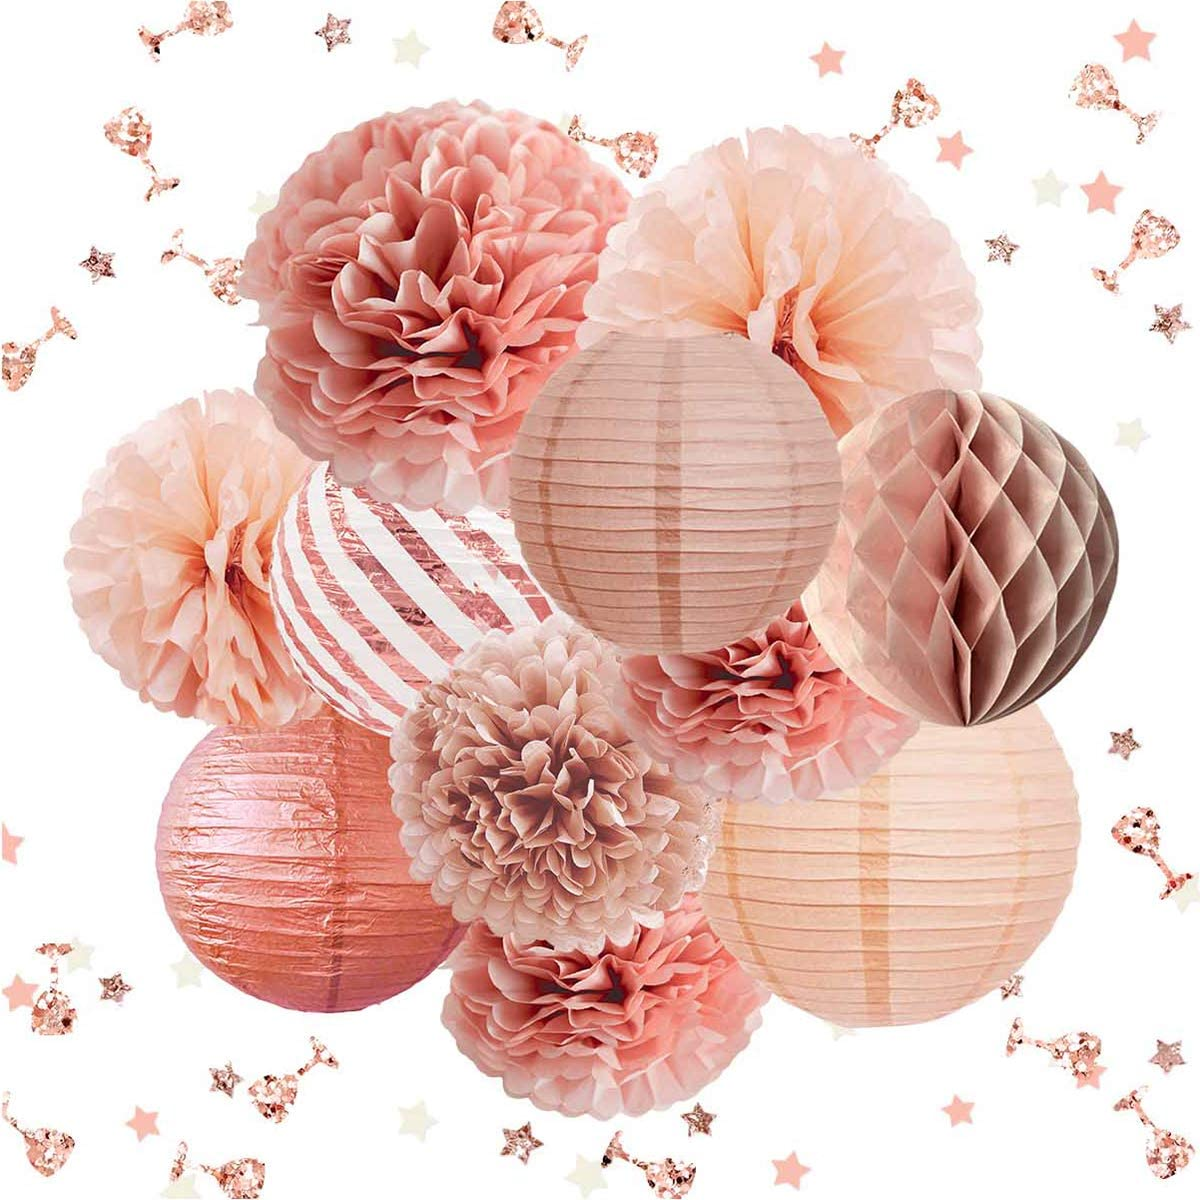 NICROLANDEE Rose Gold Party Decorations -12PCS Elegant Party Supplies Tissue Pom Poms Paper Lantern Glitter Confetti 30G for Valentine's Day Wedding Bridal Shower Baby Shower Bachelorette